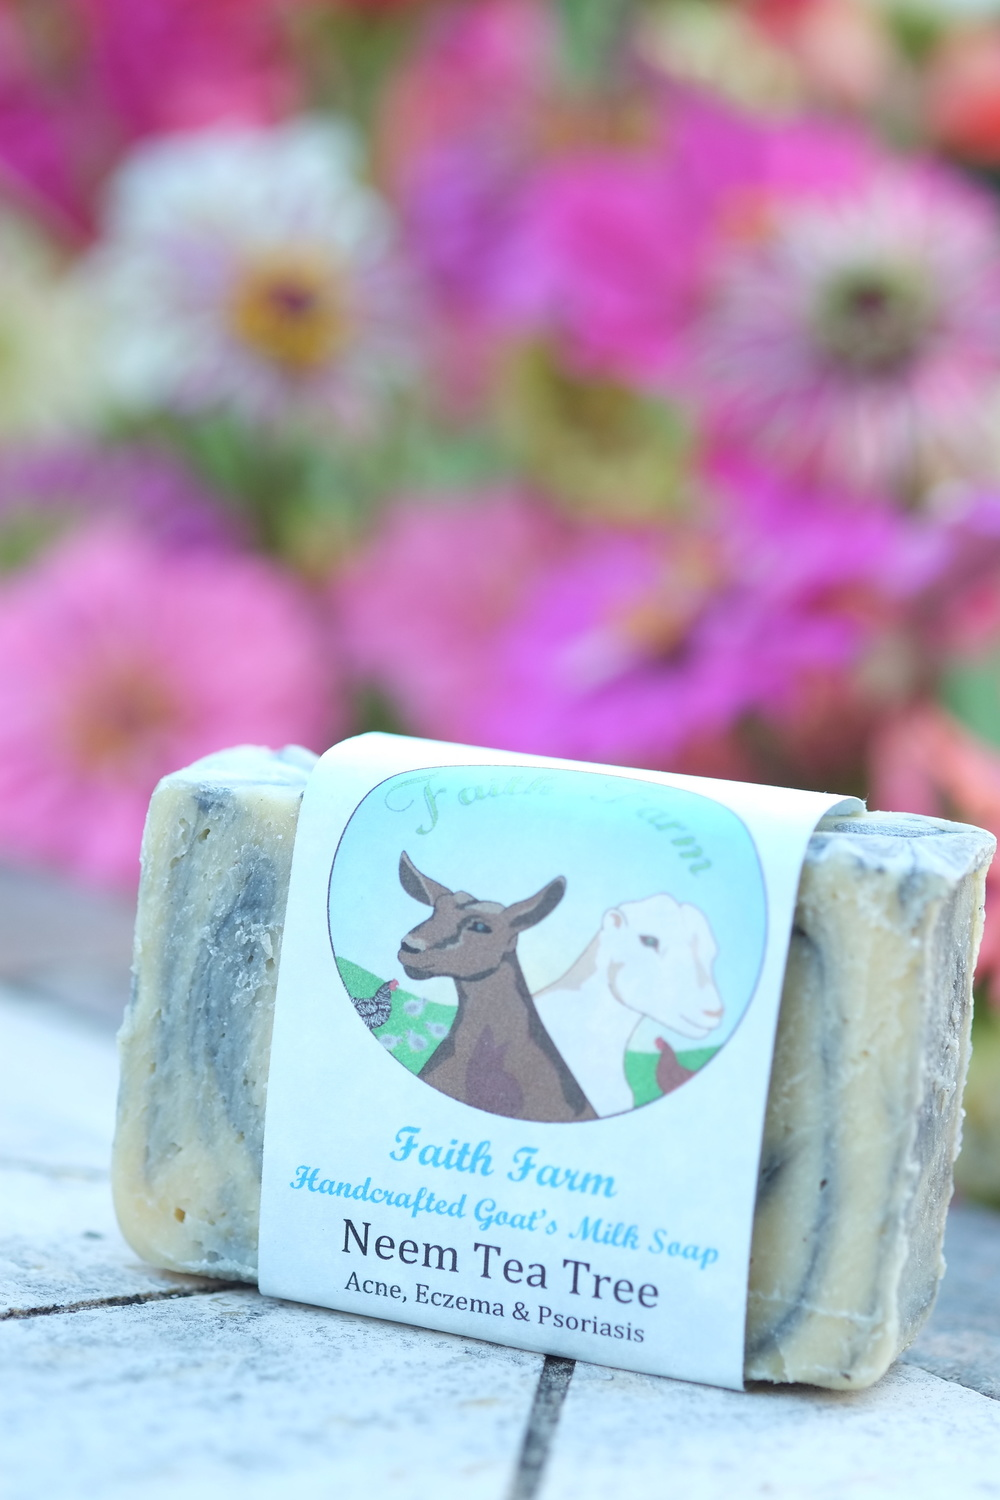 Neem Tea Tree soap bar on table made by Faith Farm